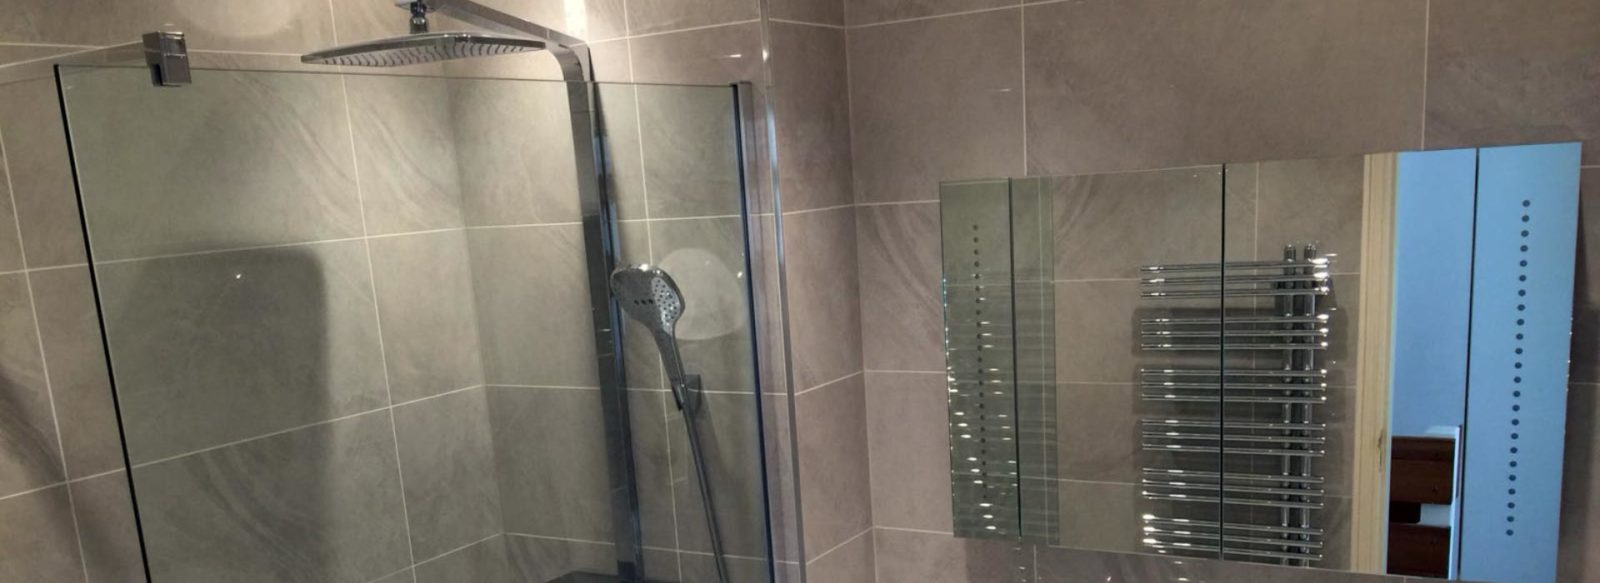 Hot and Cold Bathroom Installlations